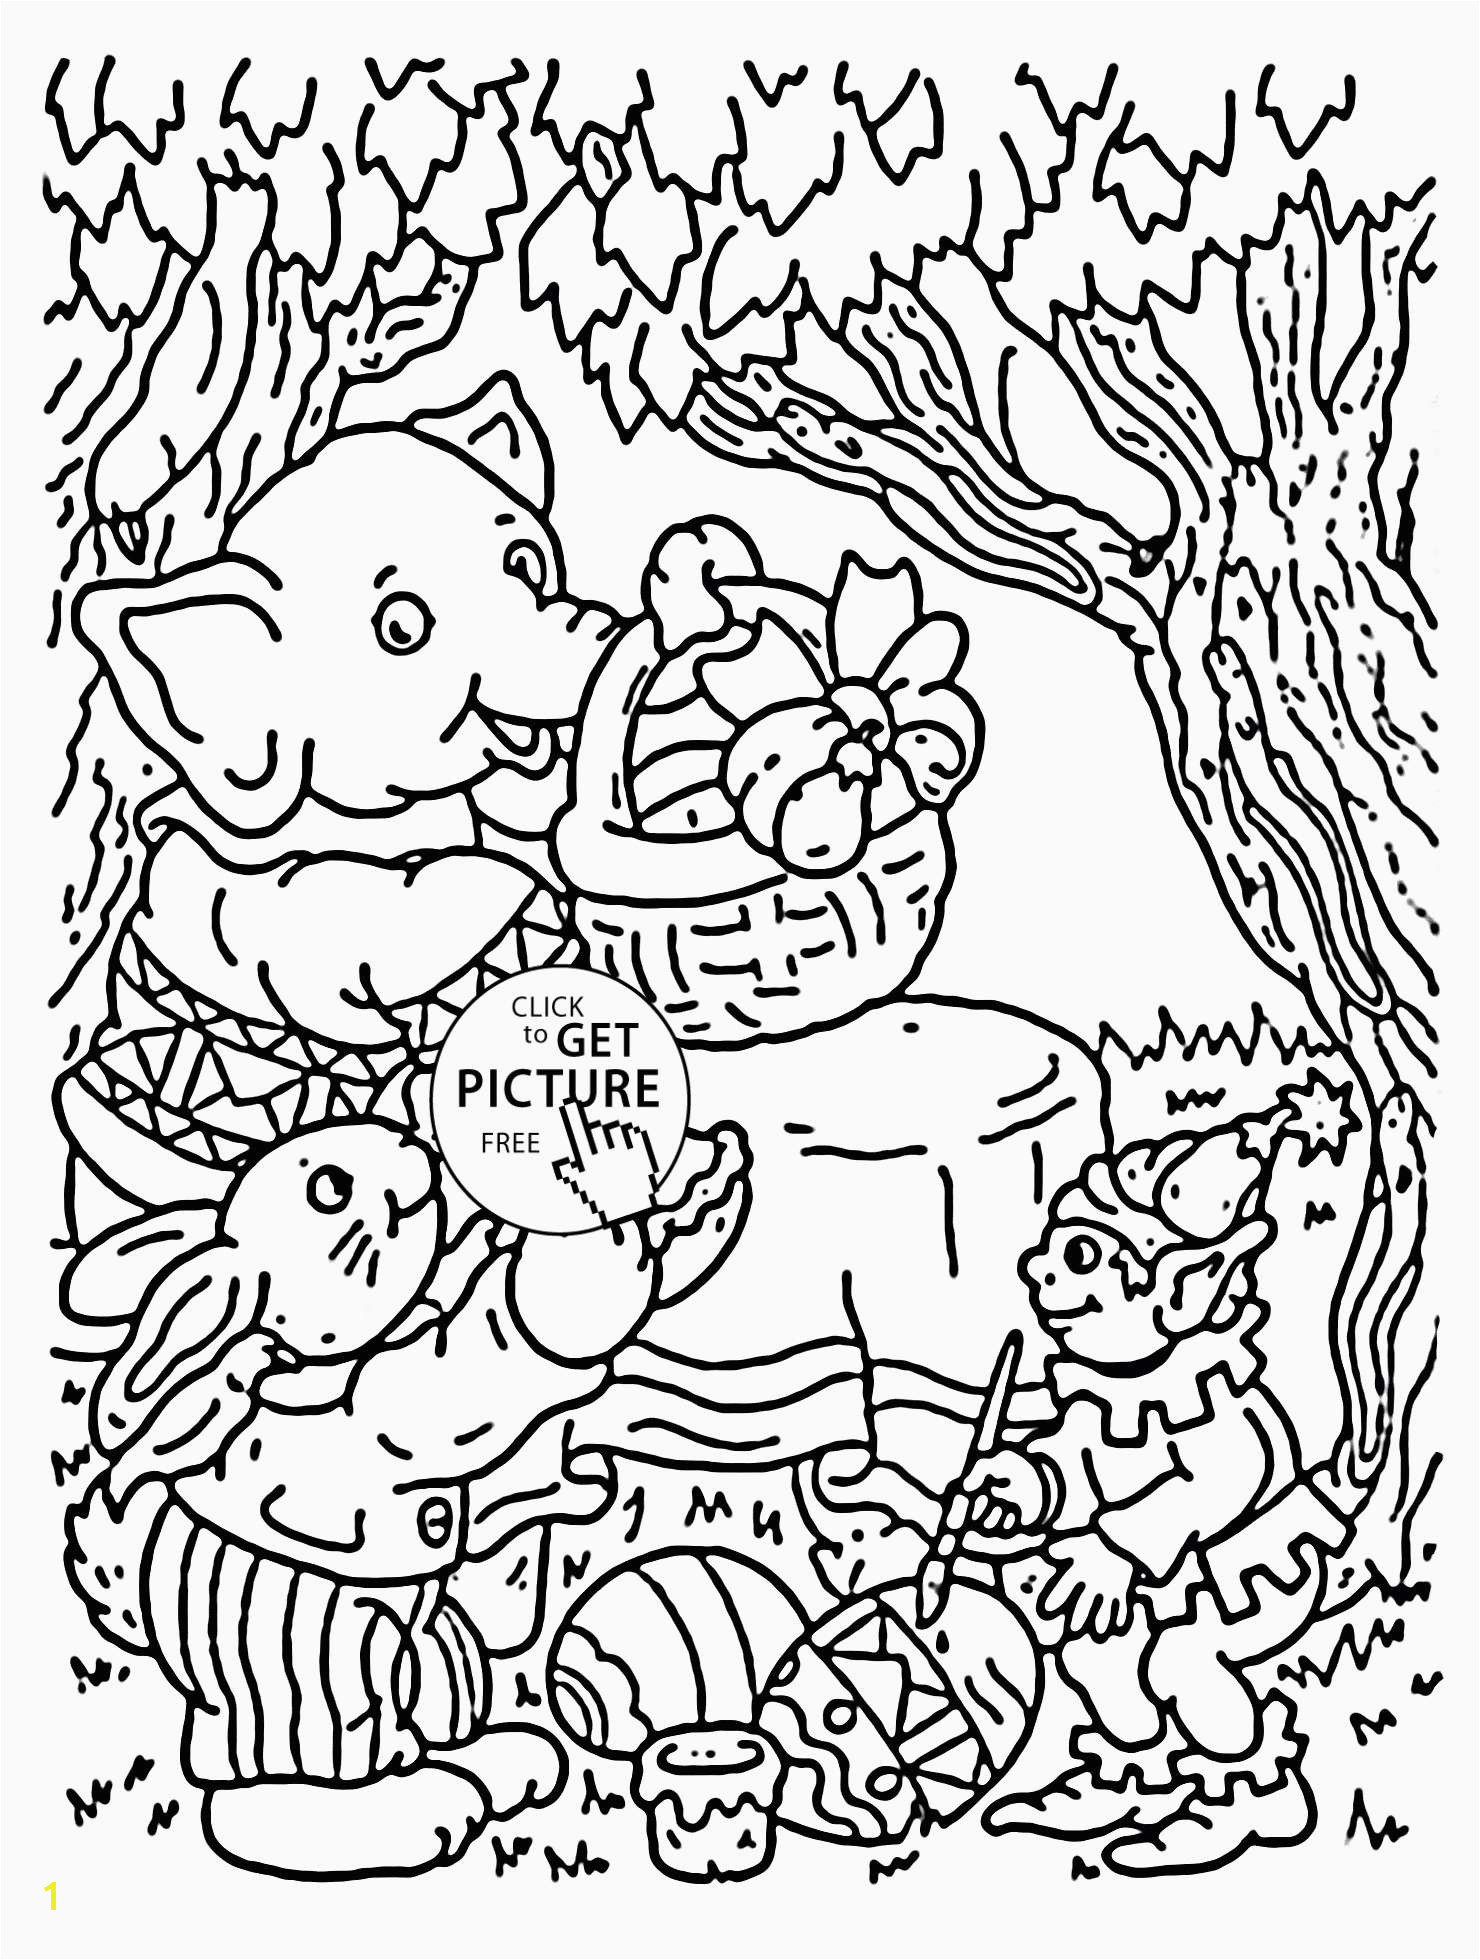 Mermaid Coloring Pages for Adults Mermaid Coloring Page Inspirational Print Coloring Pages Luxury S S Media